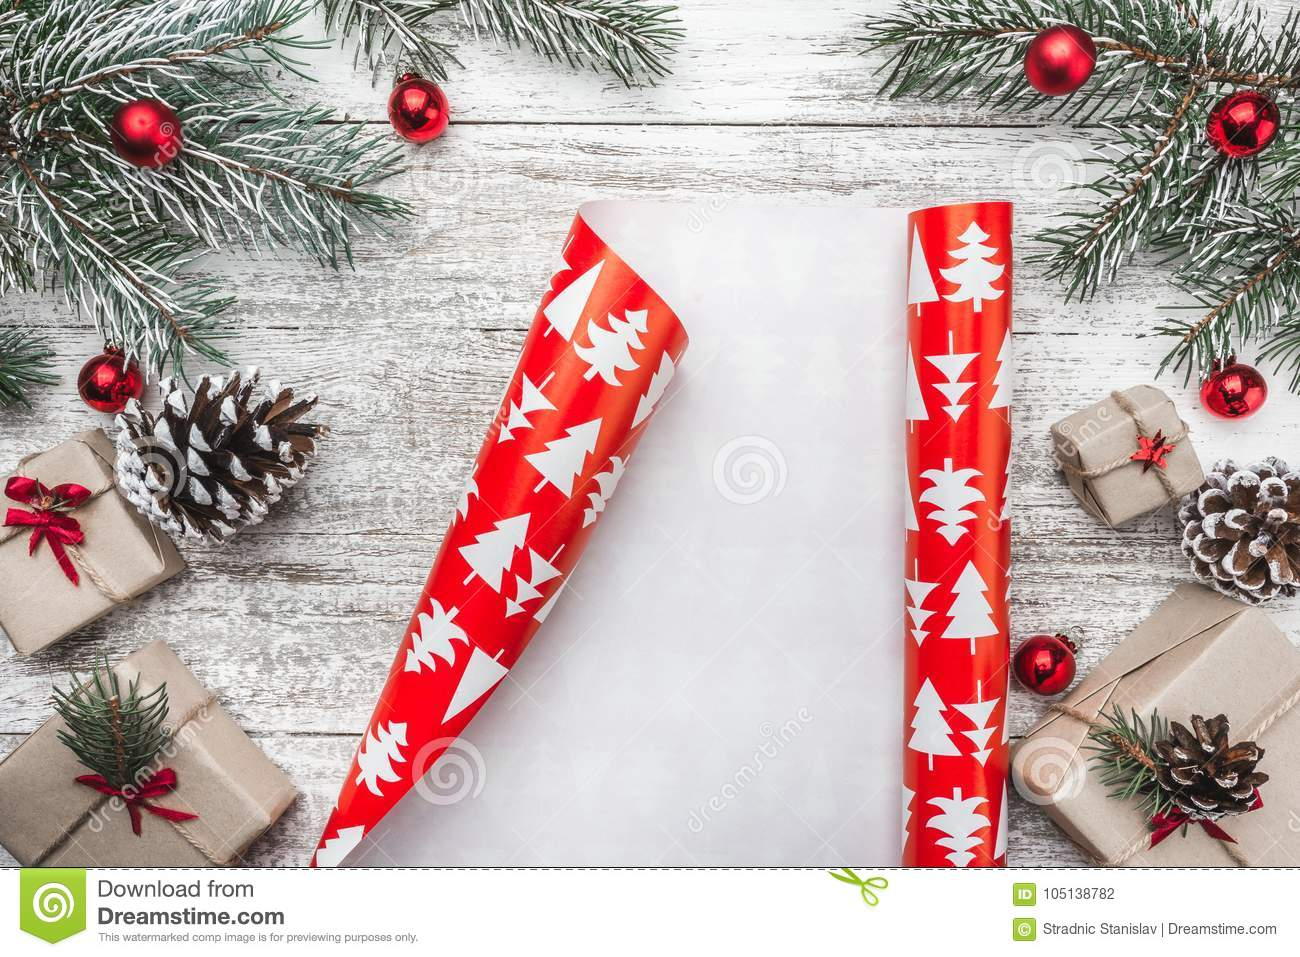 Upper, top view, of Christmas presents on a wooden rustic background, decorated with evergreen branch.